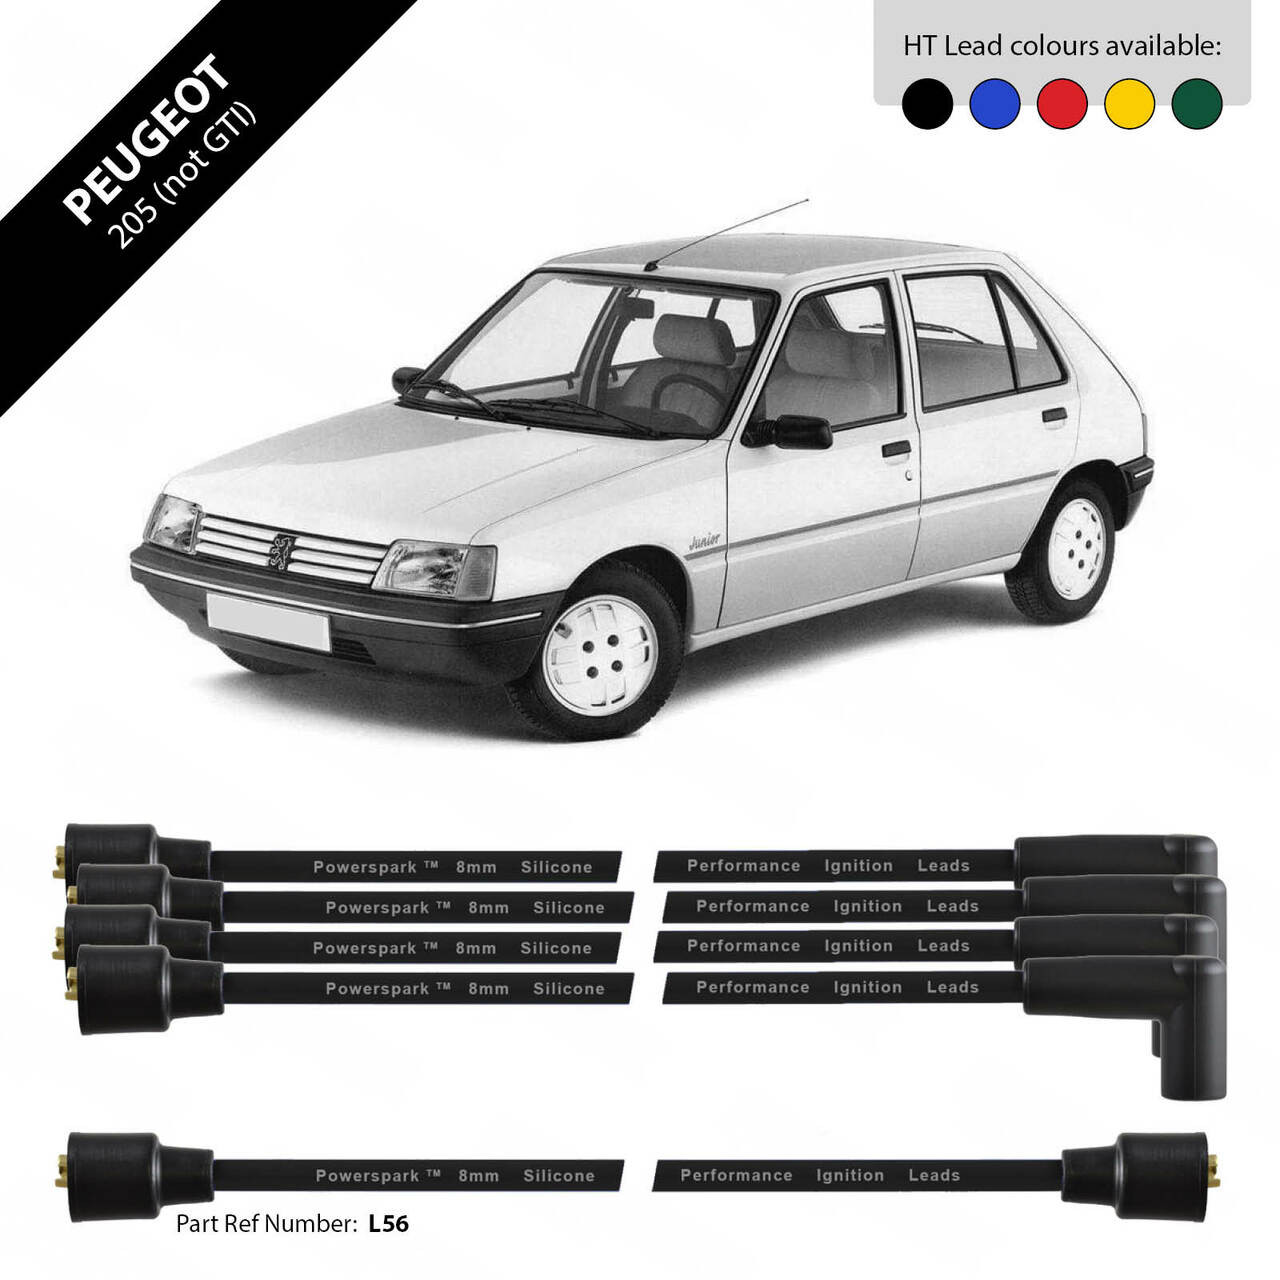 Powerspark Peugeot 205 1300cc HT Leads 8mm Double Silicone